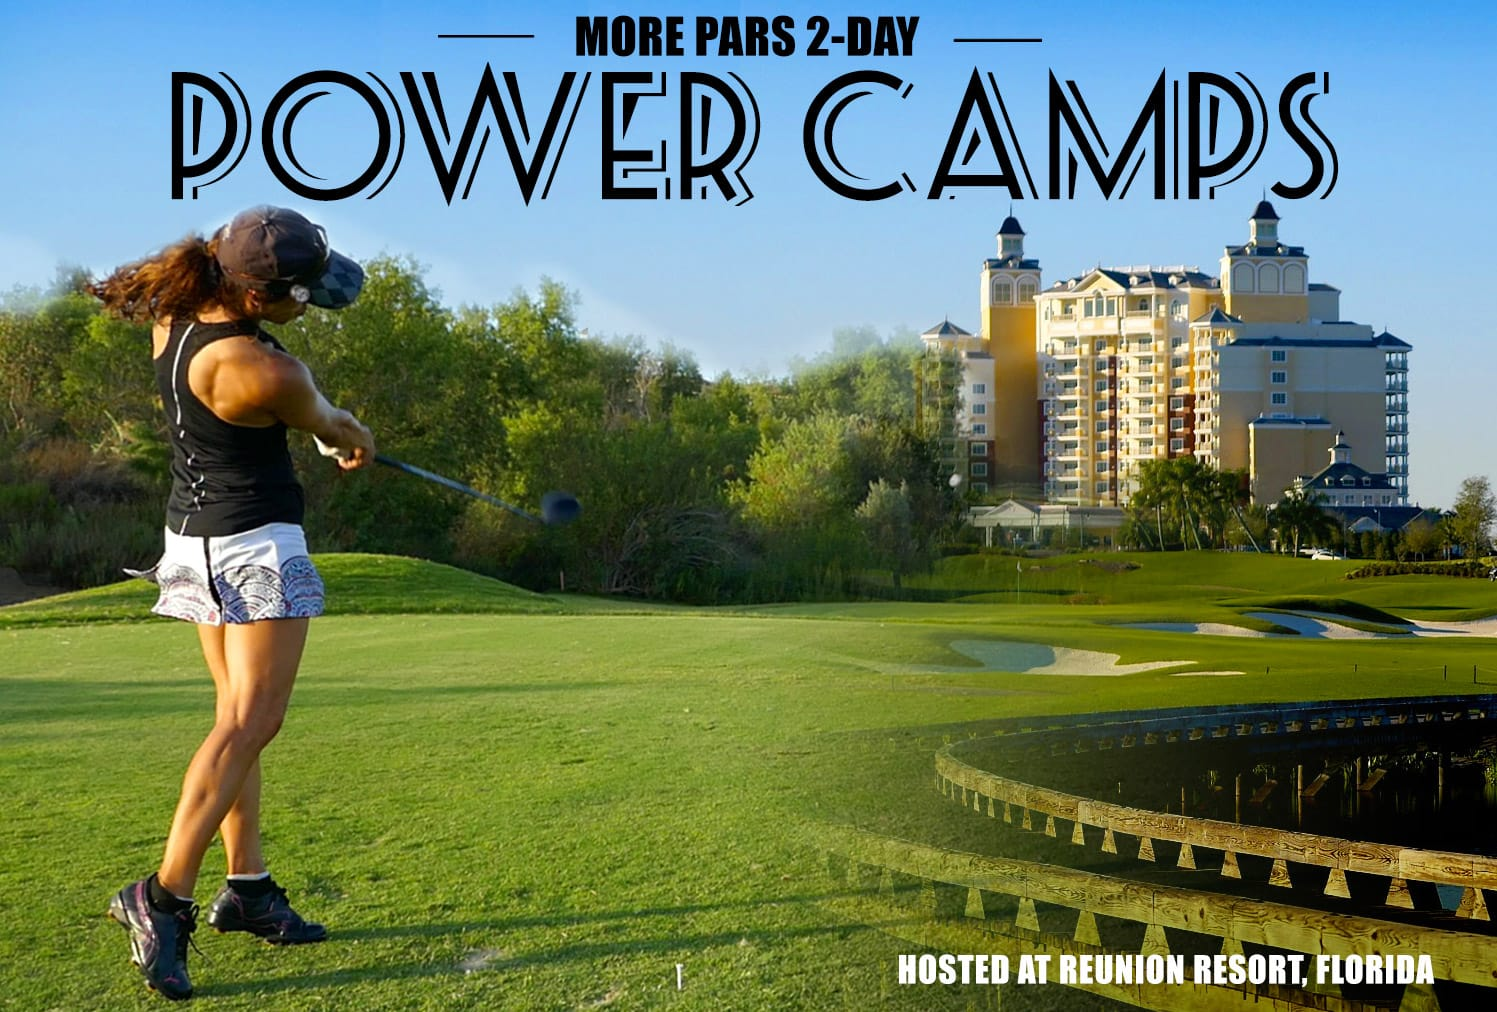 More Pars POWER Camps!